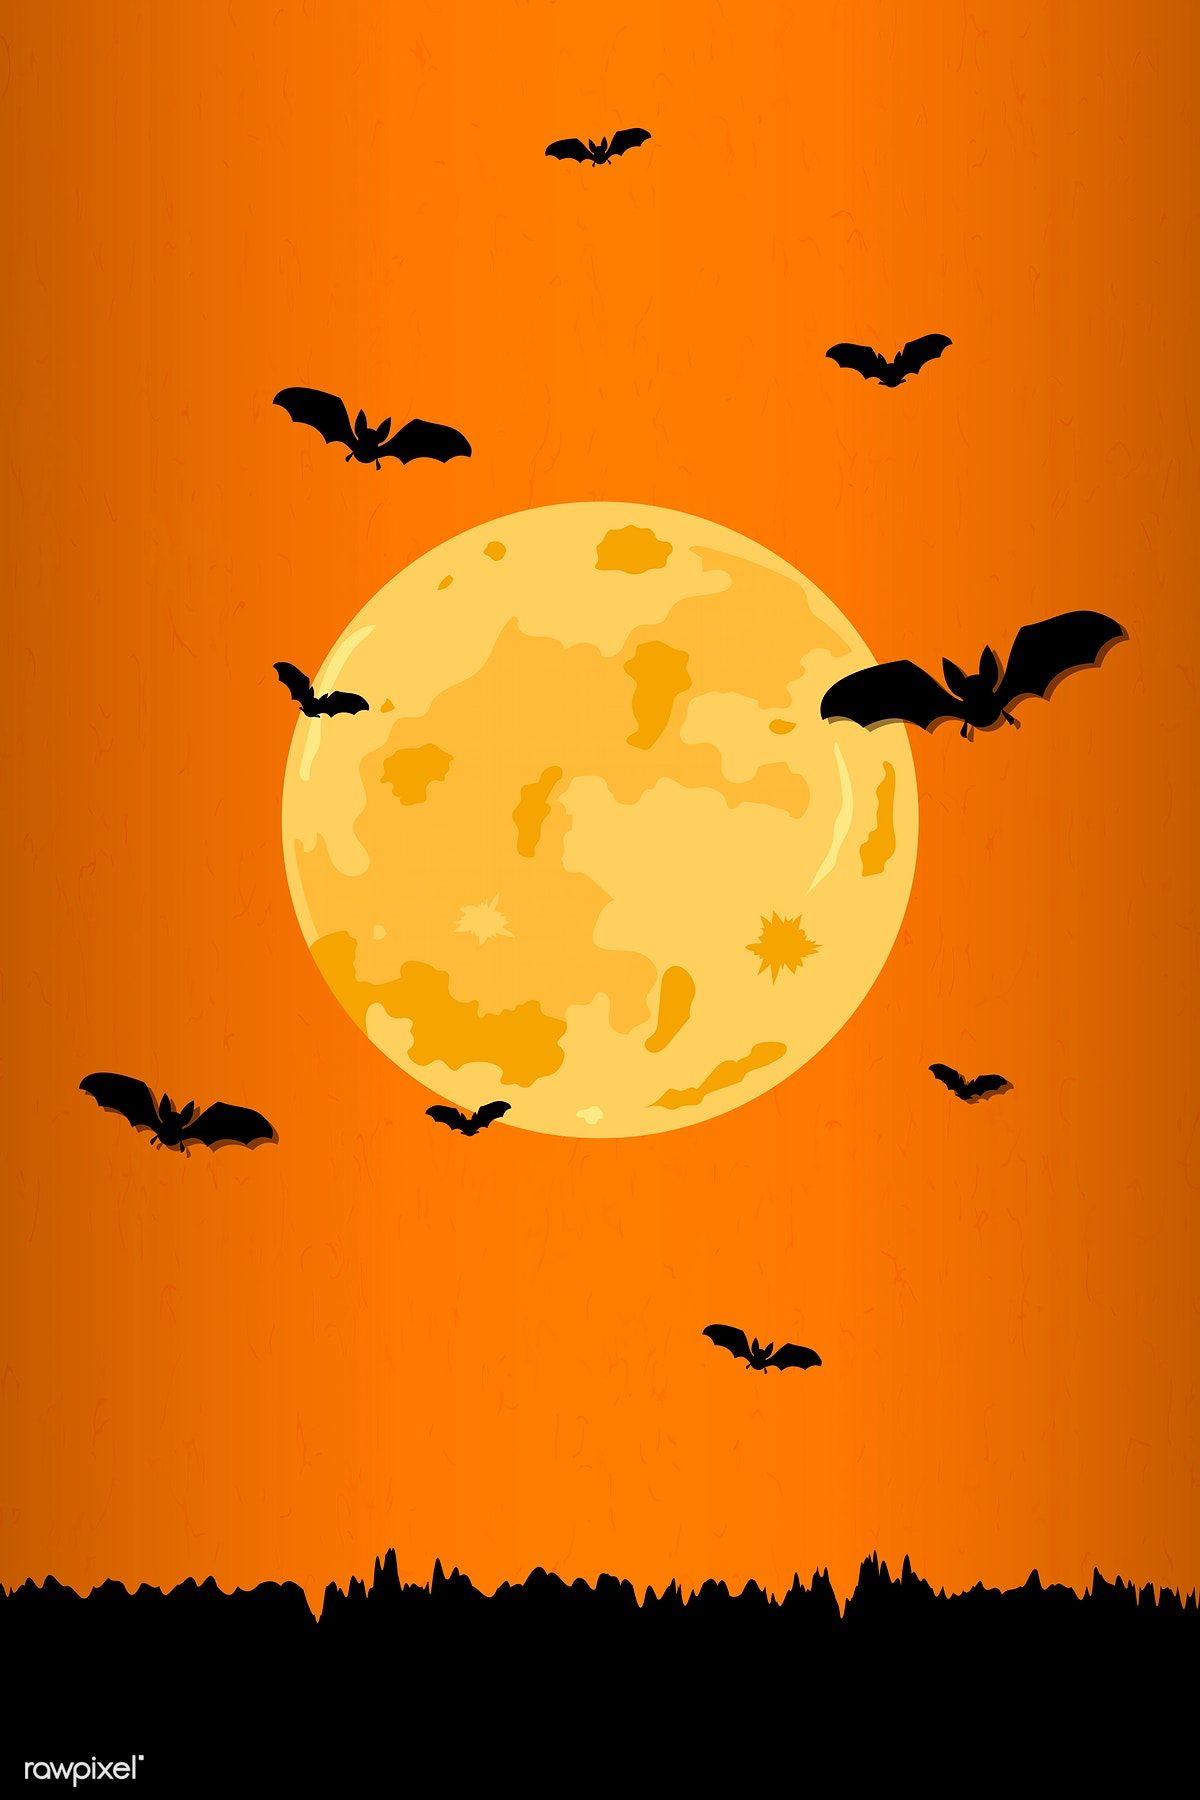 Full Moon Pattern On Orange Halloween Background Vector Free Image By Rawpixel Com Aew Halloween Illustration Halloween Backgrounds Moon Pattern